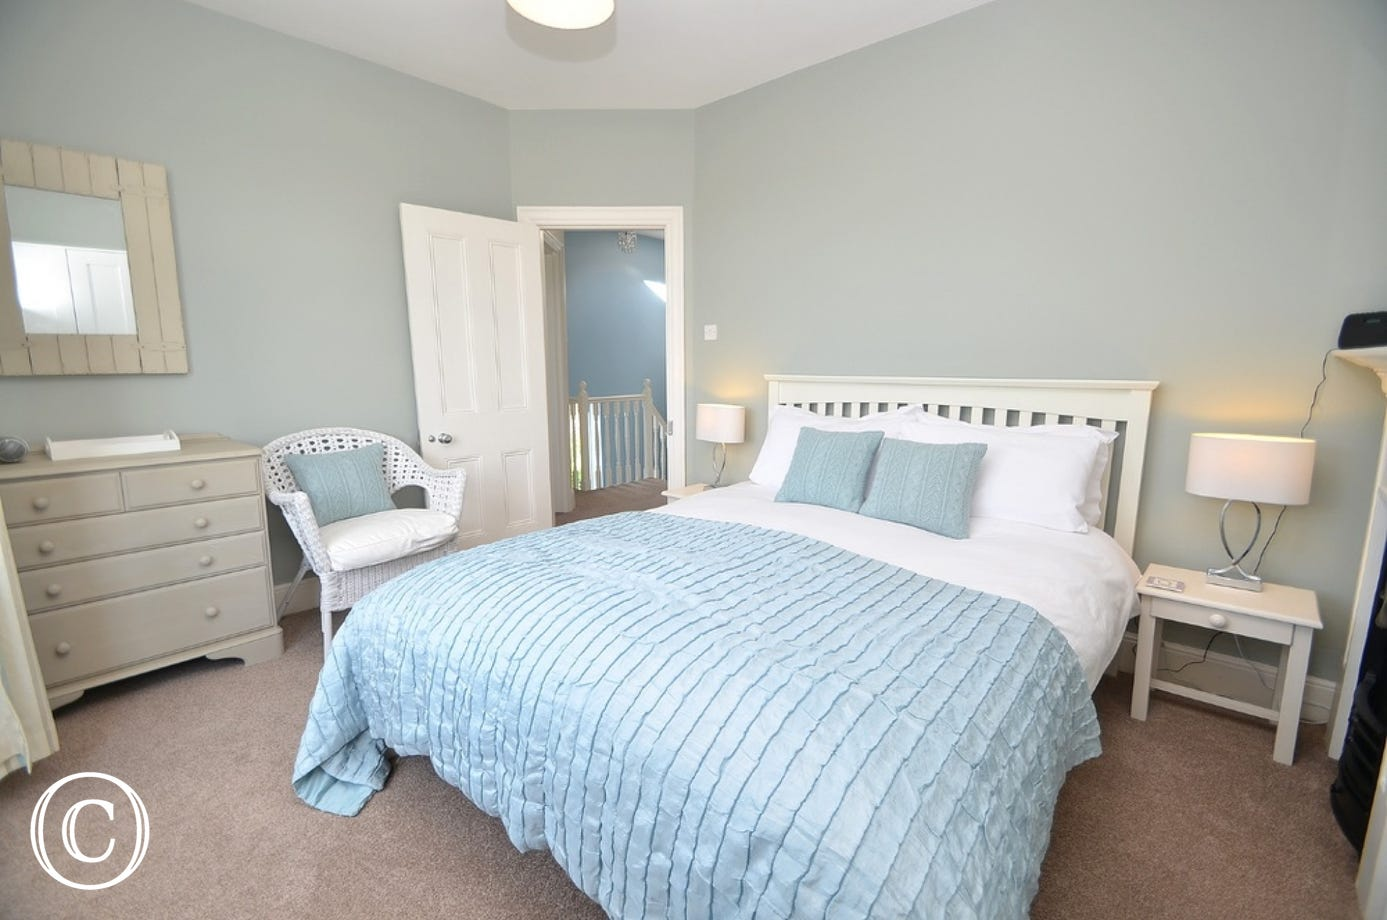 Master bedroom: Kingsize bed, matching bedside tables and one-touch lamps, a cushioned window seat with views over the River Dart. Single wardrobe, chest of drawers.